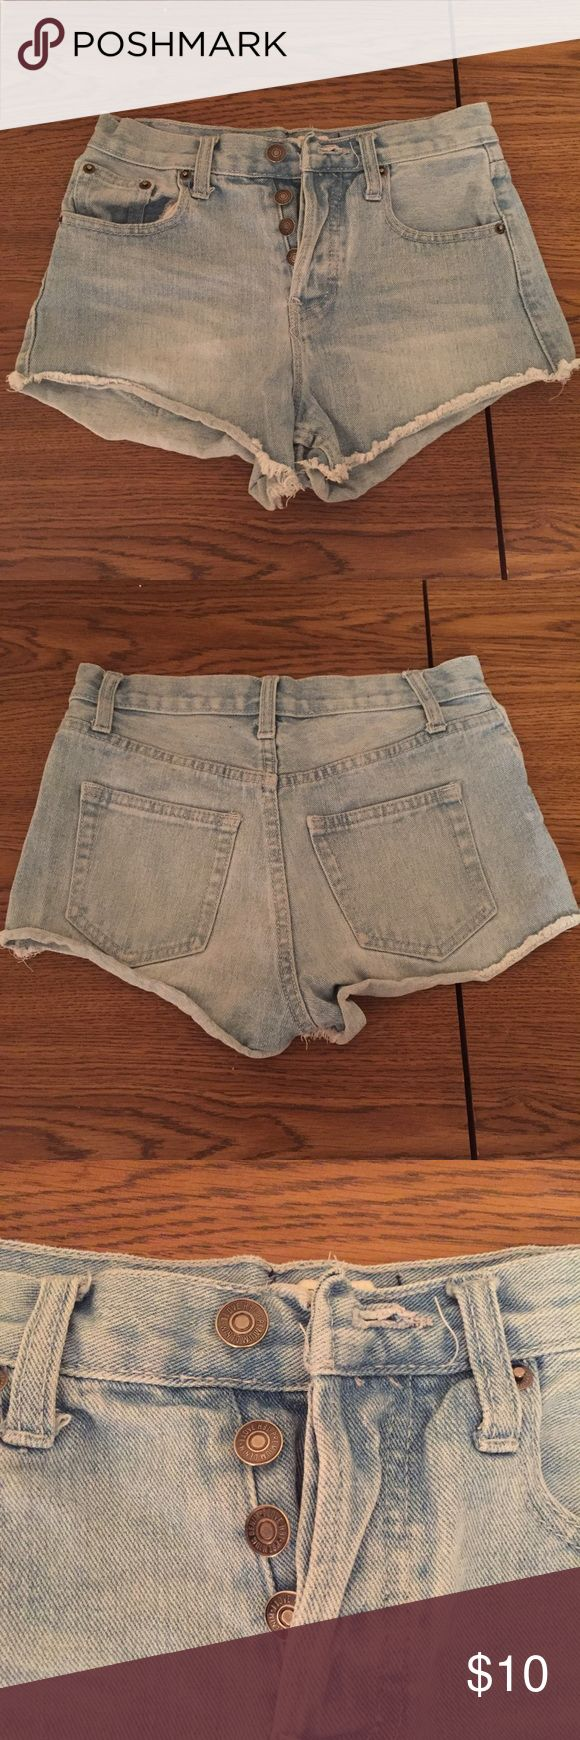 FOREVER 21 high-rise jean shorts High-rise jean shorts. Worn but still in great condition. Buttons up with a light wash. Forever 21 Shorts Jean Shorts